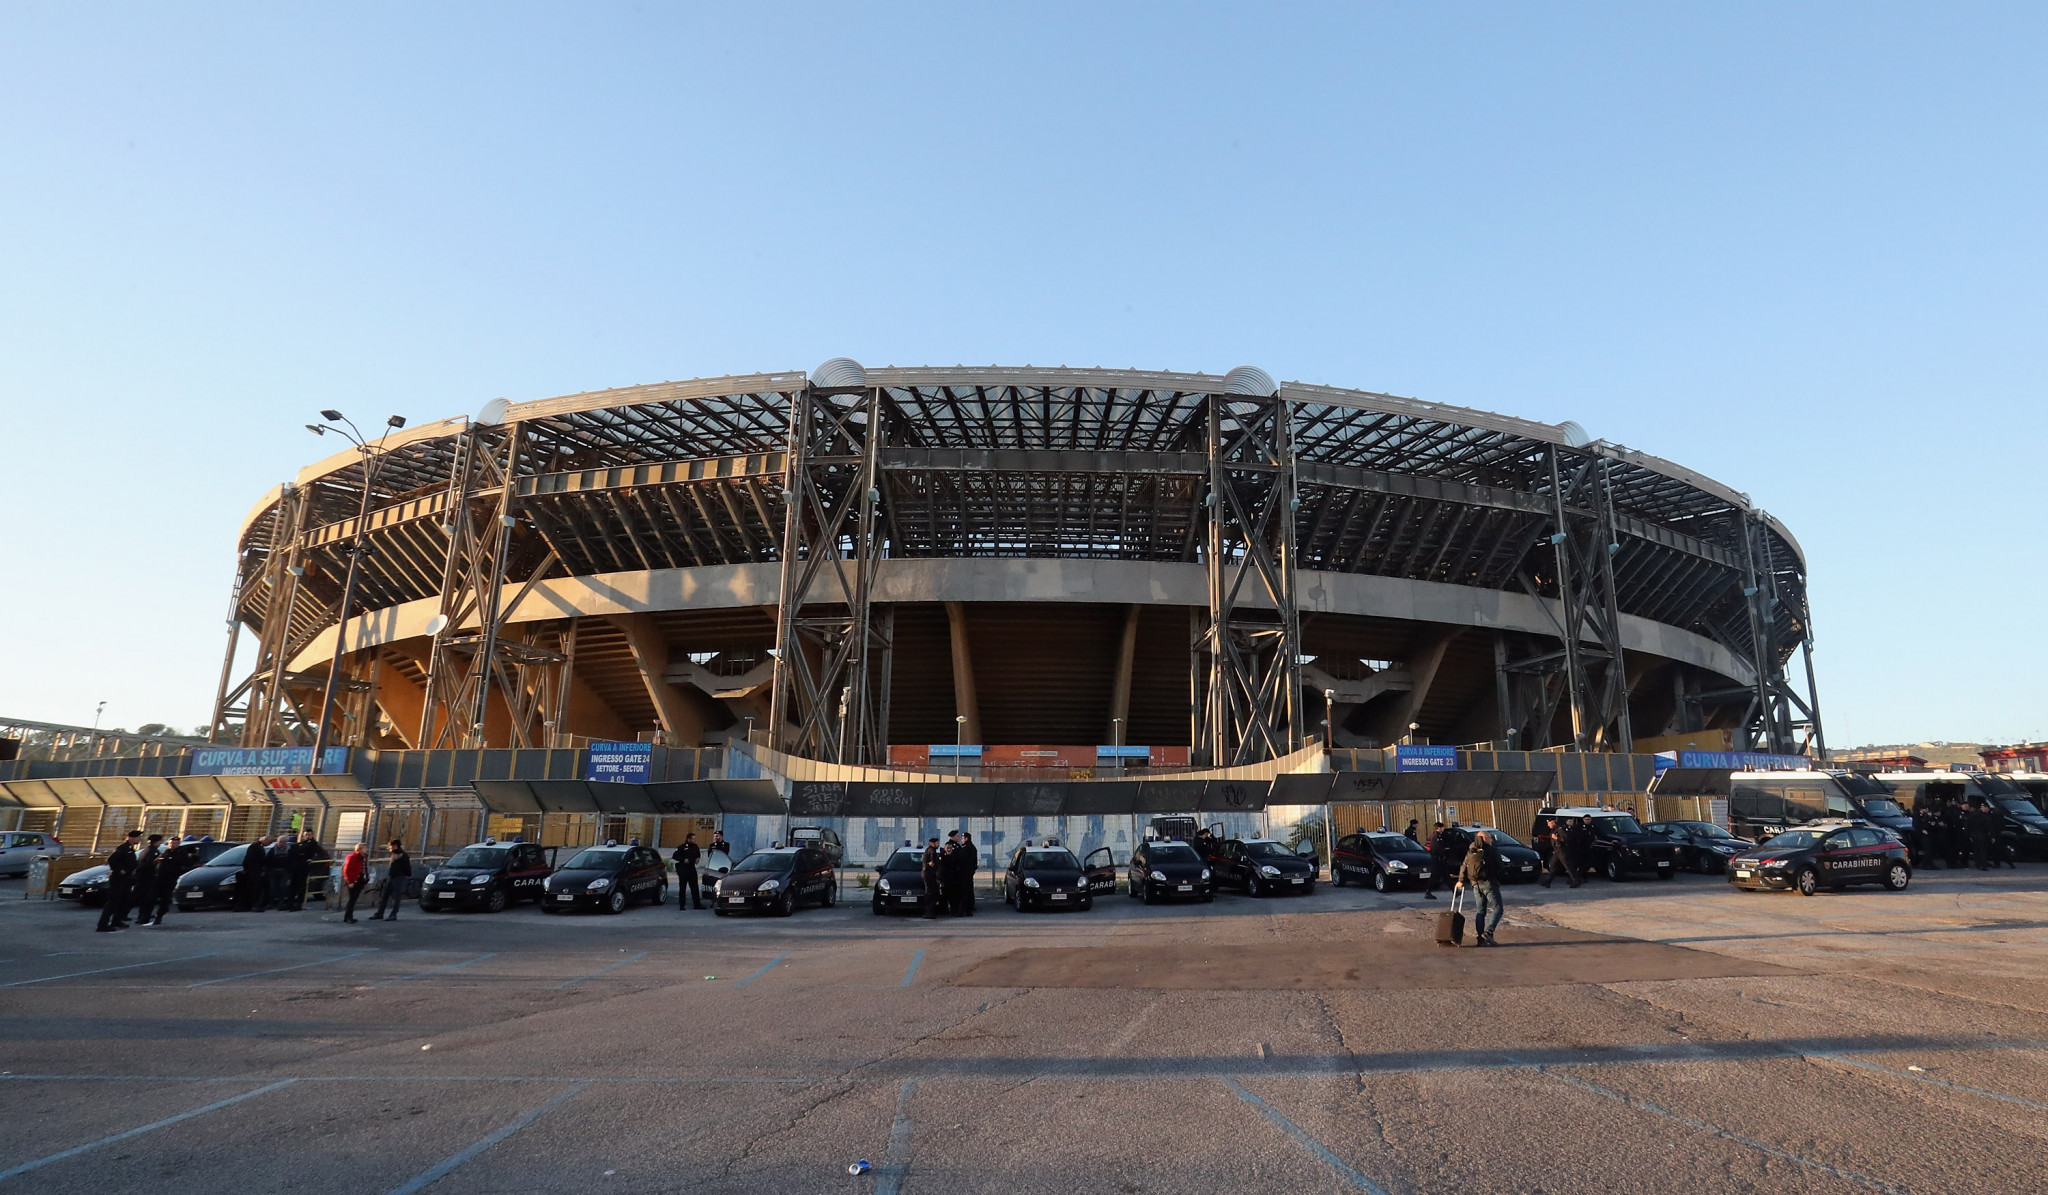 The Stadio San Paolo will serve as the main Naples 2019 venue ©Getty Images